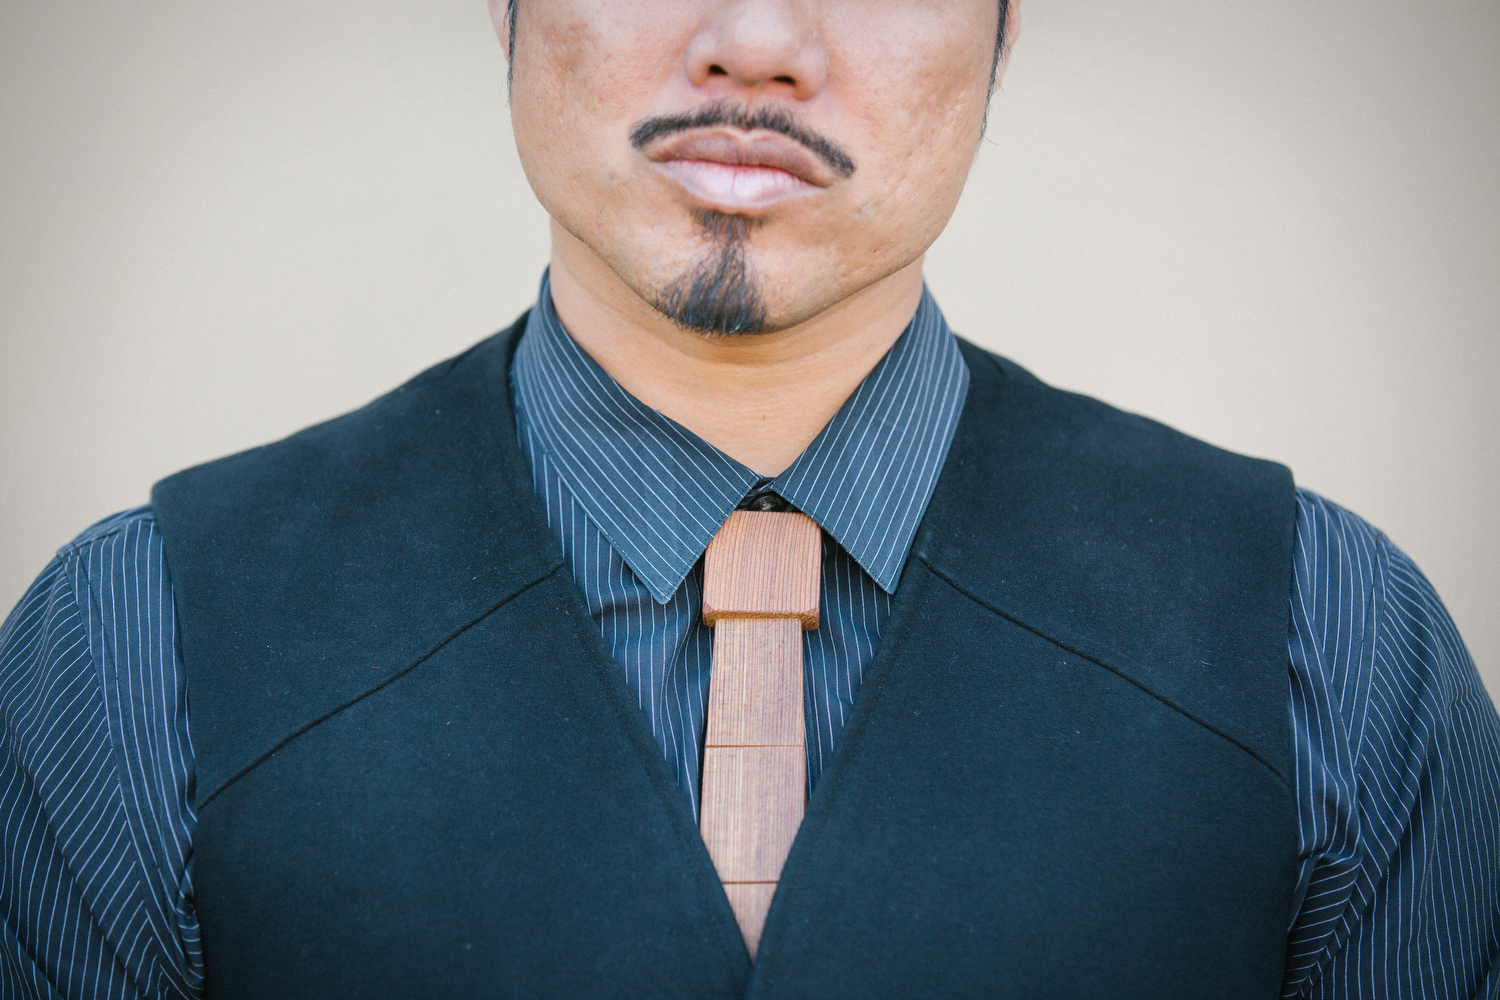 Alfred sported an awesome wood tie from  Wood Thumb  in San Francisco.